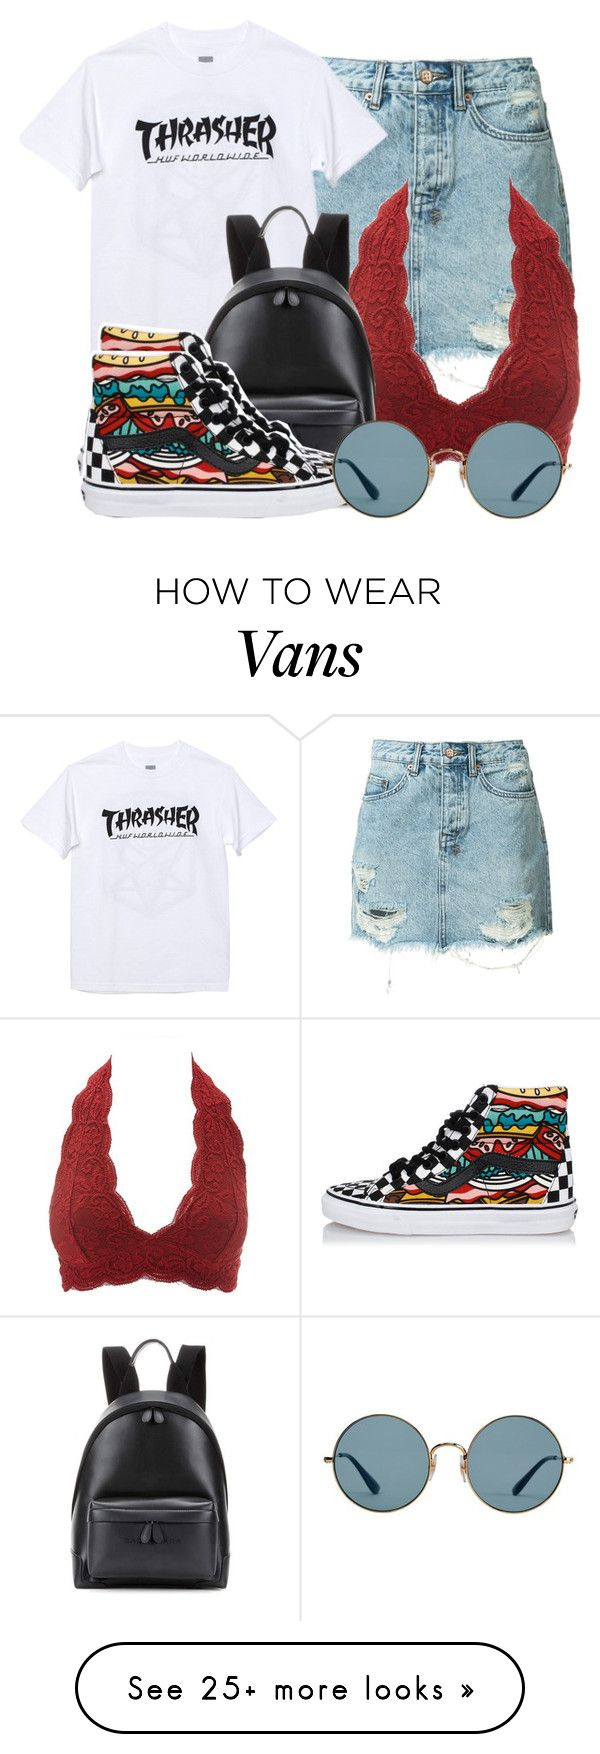 """6/5/2017"" by ashcake-wilson on Polyvore featuring Ksubi, Charlotte Russe, HUF, Balenciaga, Vans and Ray-Ban"